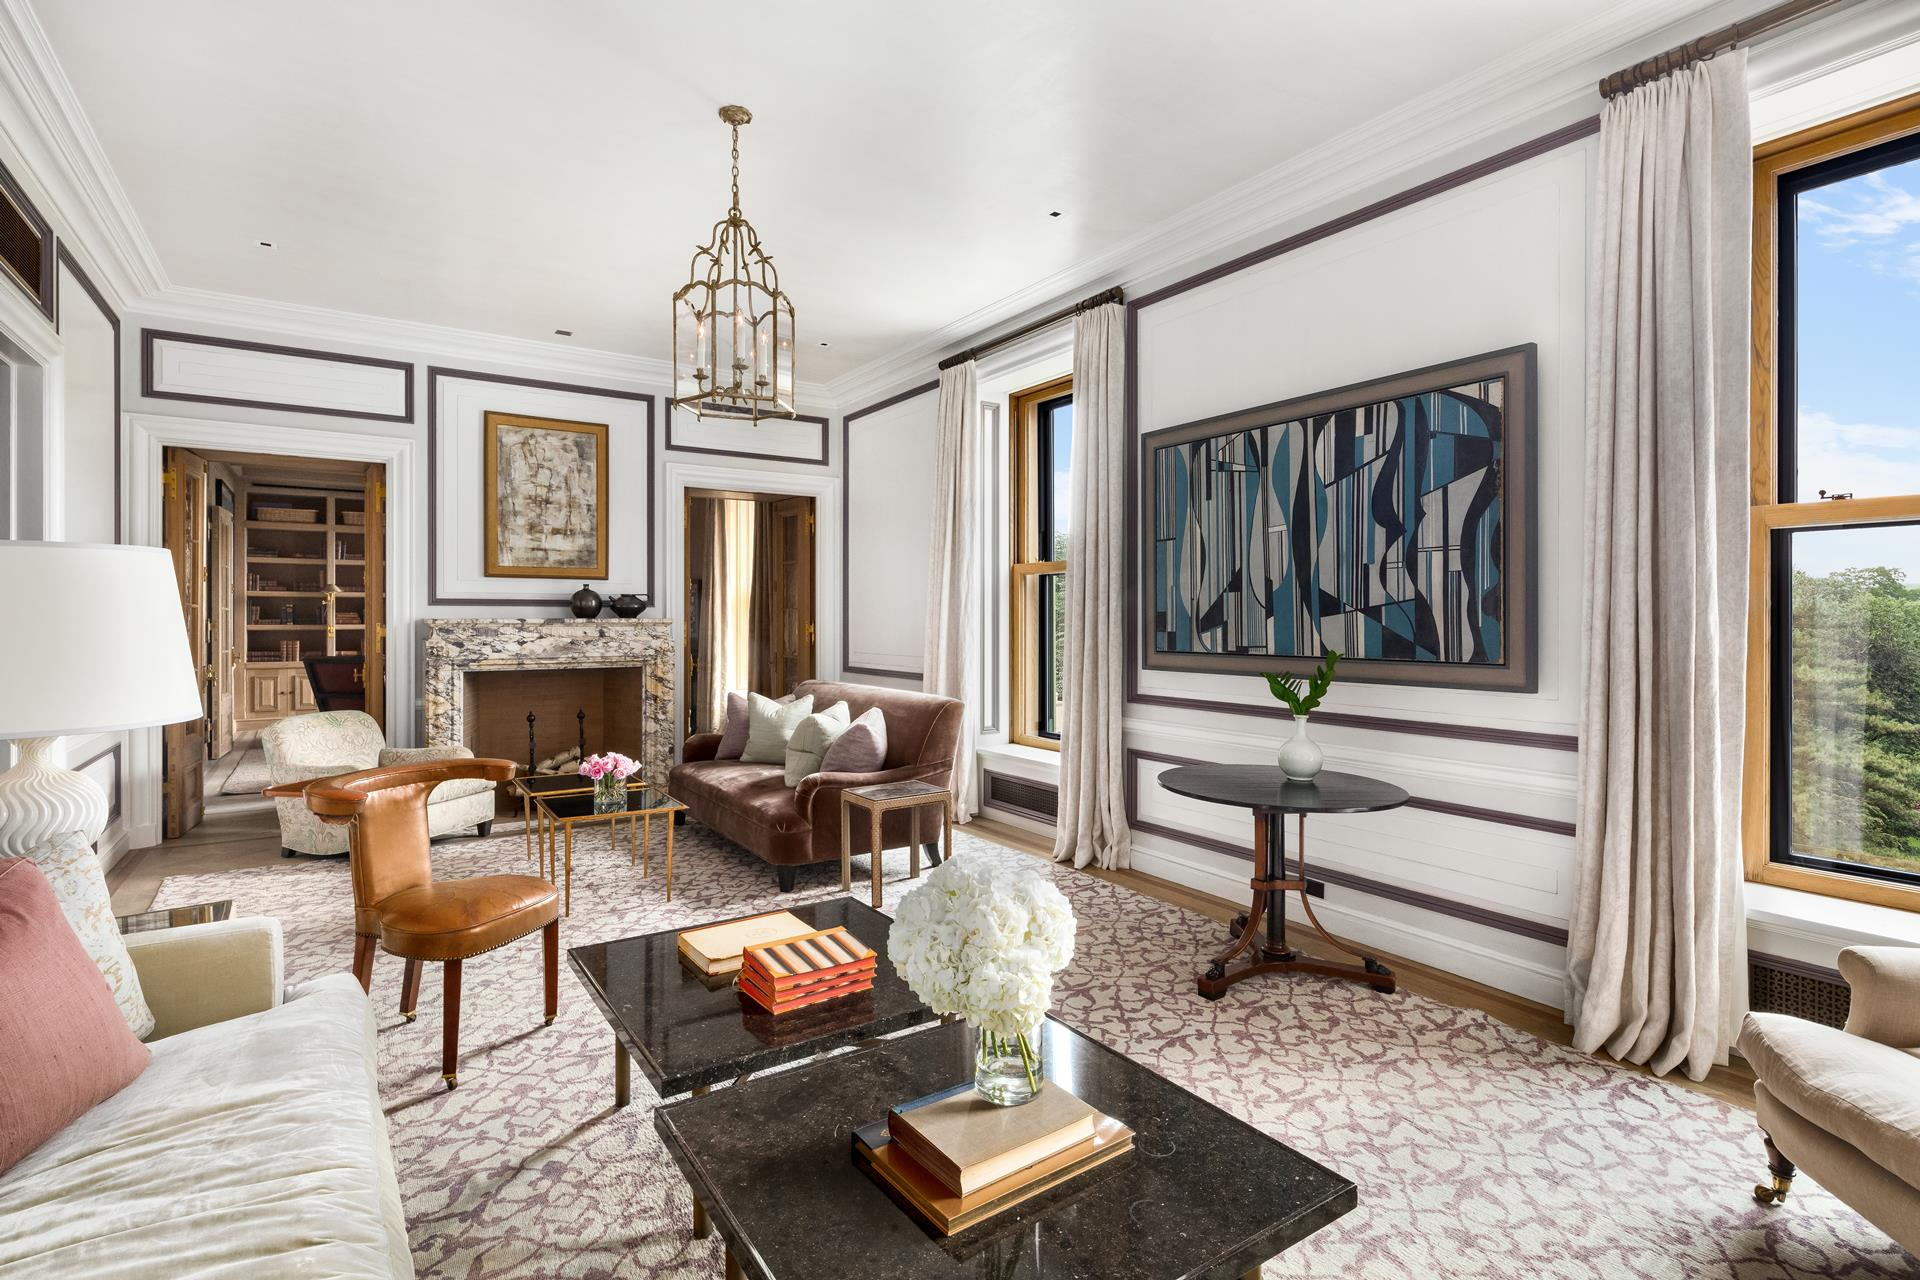 The Plaza Residences, 1 Central Park South, 509 - Central Park South, New York